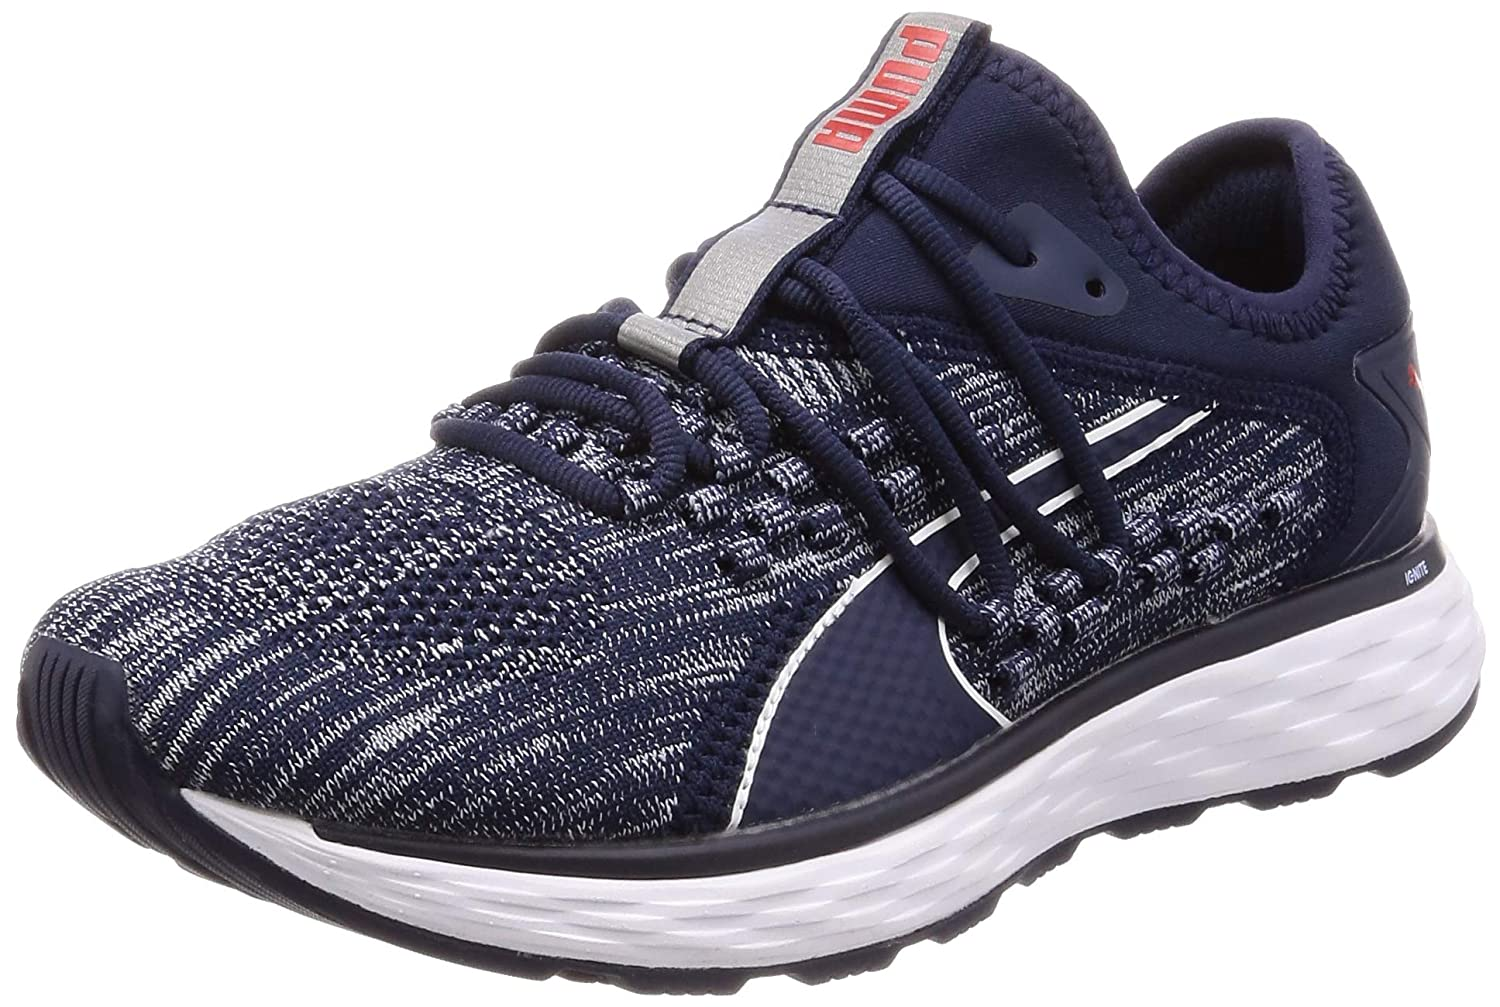 6032b4e15eeb23 Puma Speed 600 Fusefit Womens Running Shoes - Blue  Amazon.co.uk  Sports    Outdoors